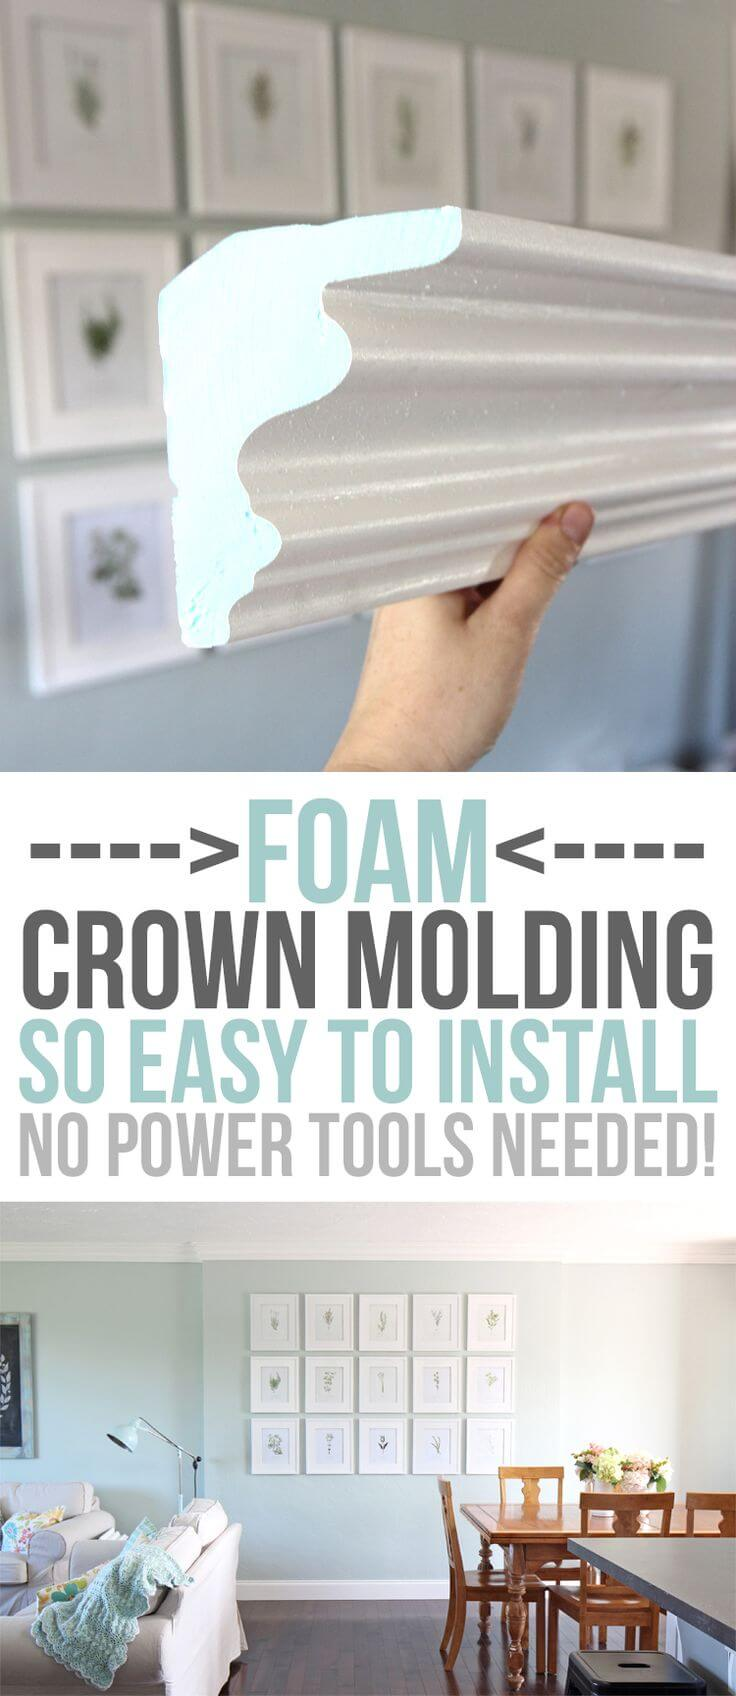 Add Substantial Molding without Power Tools